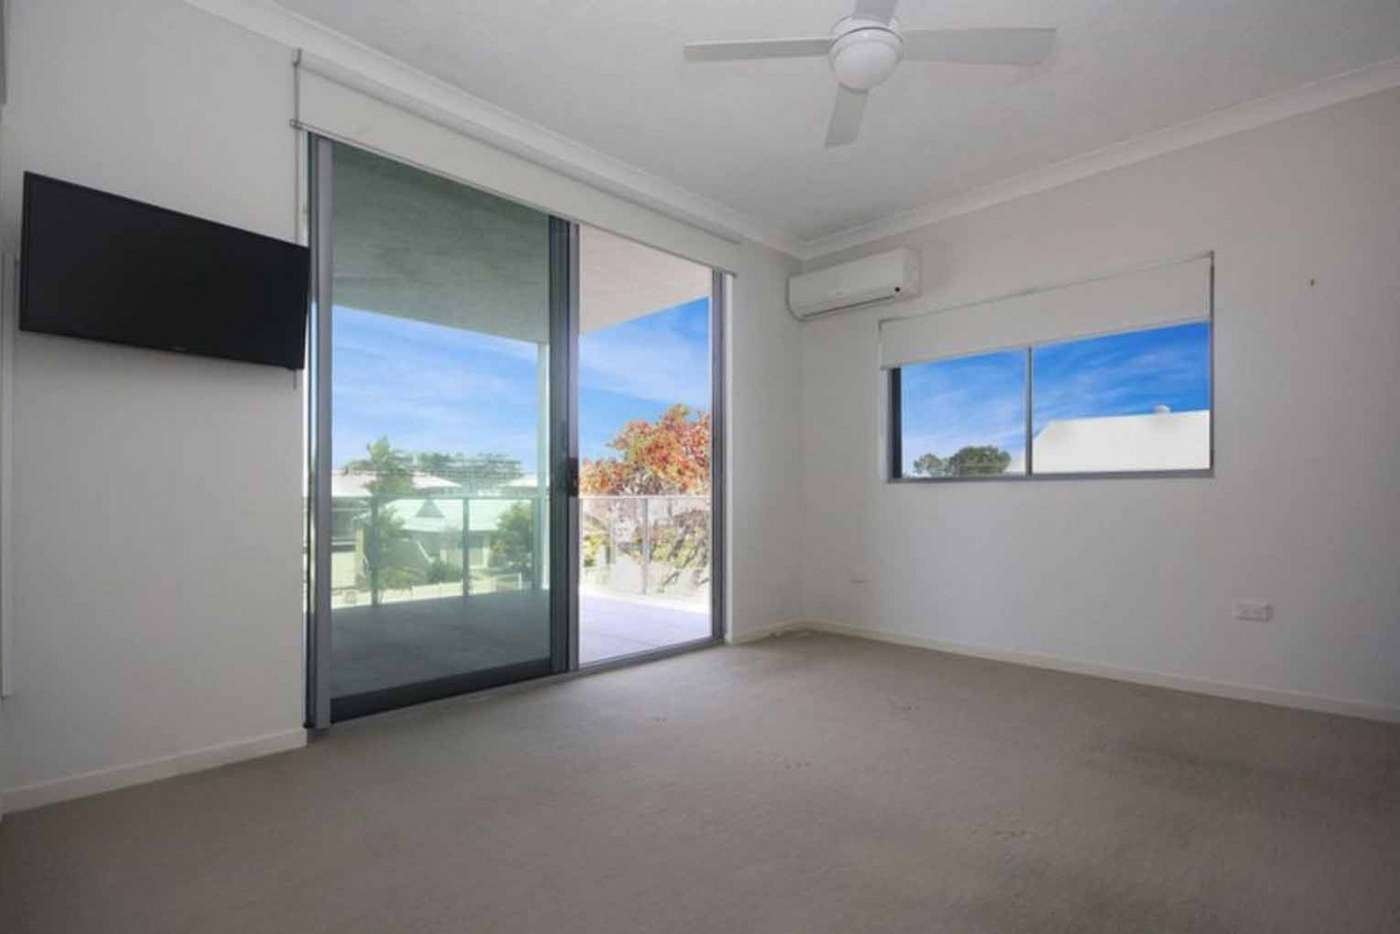 Sixth view of Homely apartment listing, 8/2 Beaconsfield Street, Margate Beach QLD 4019